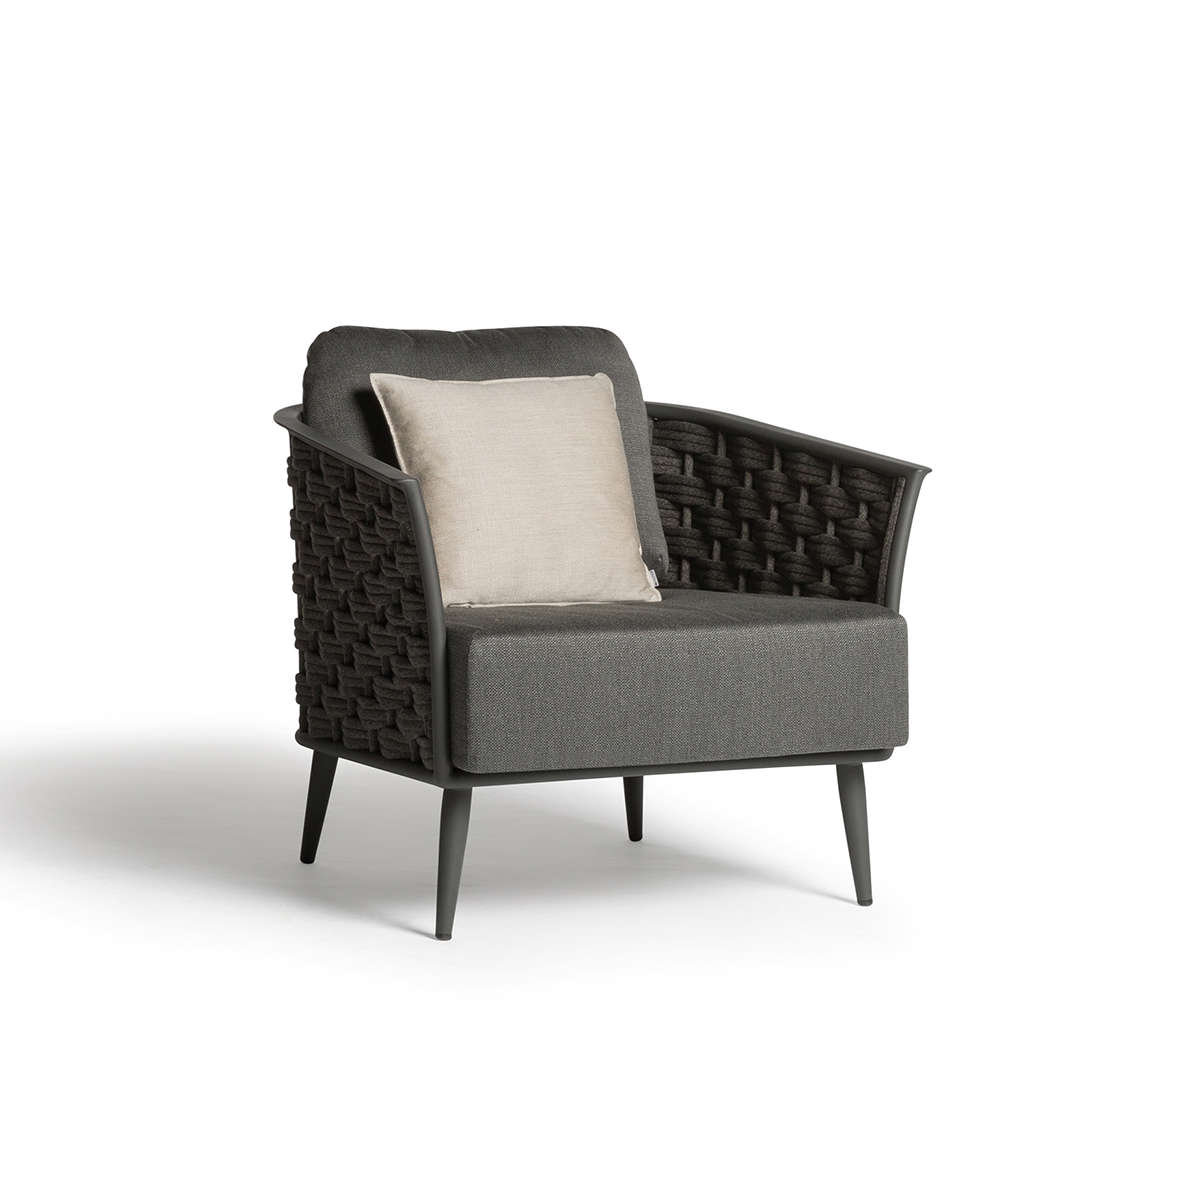 Manutti Cascade Lounge Chair5